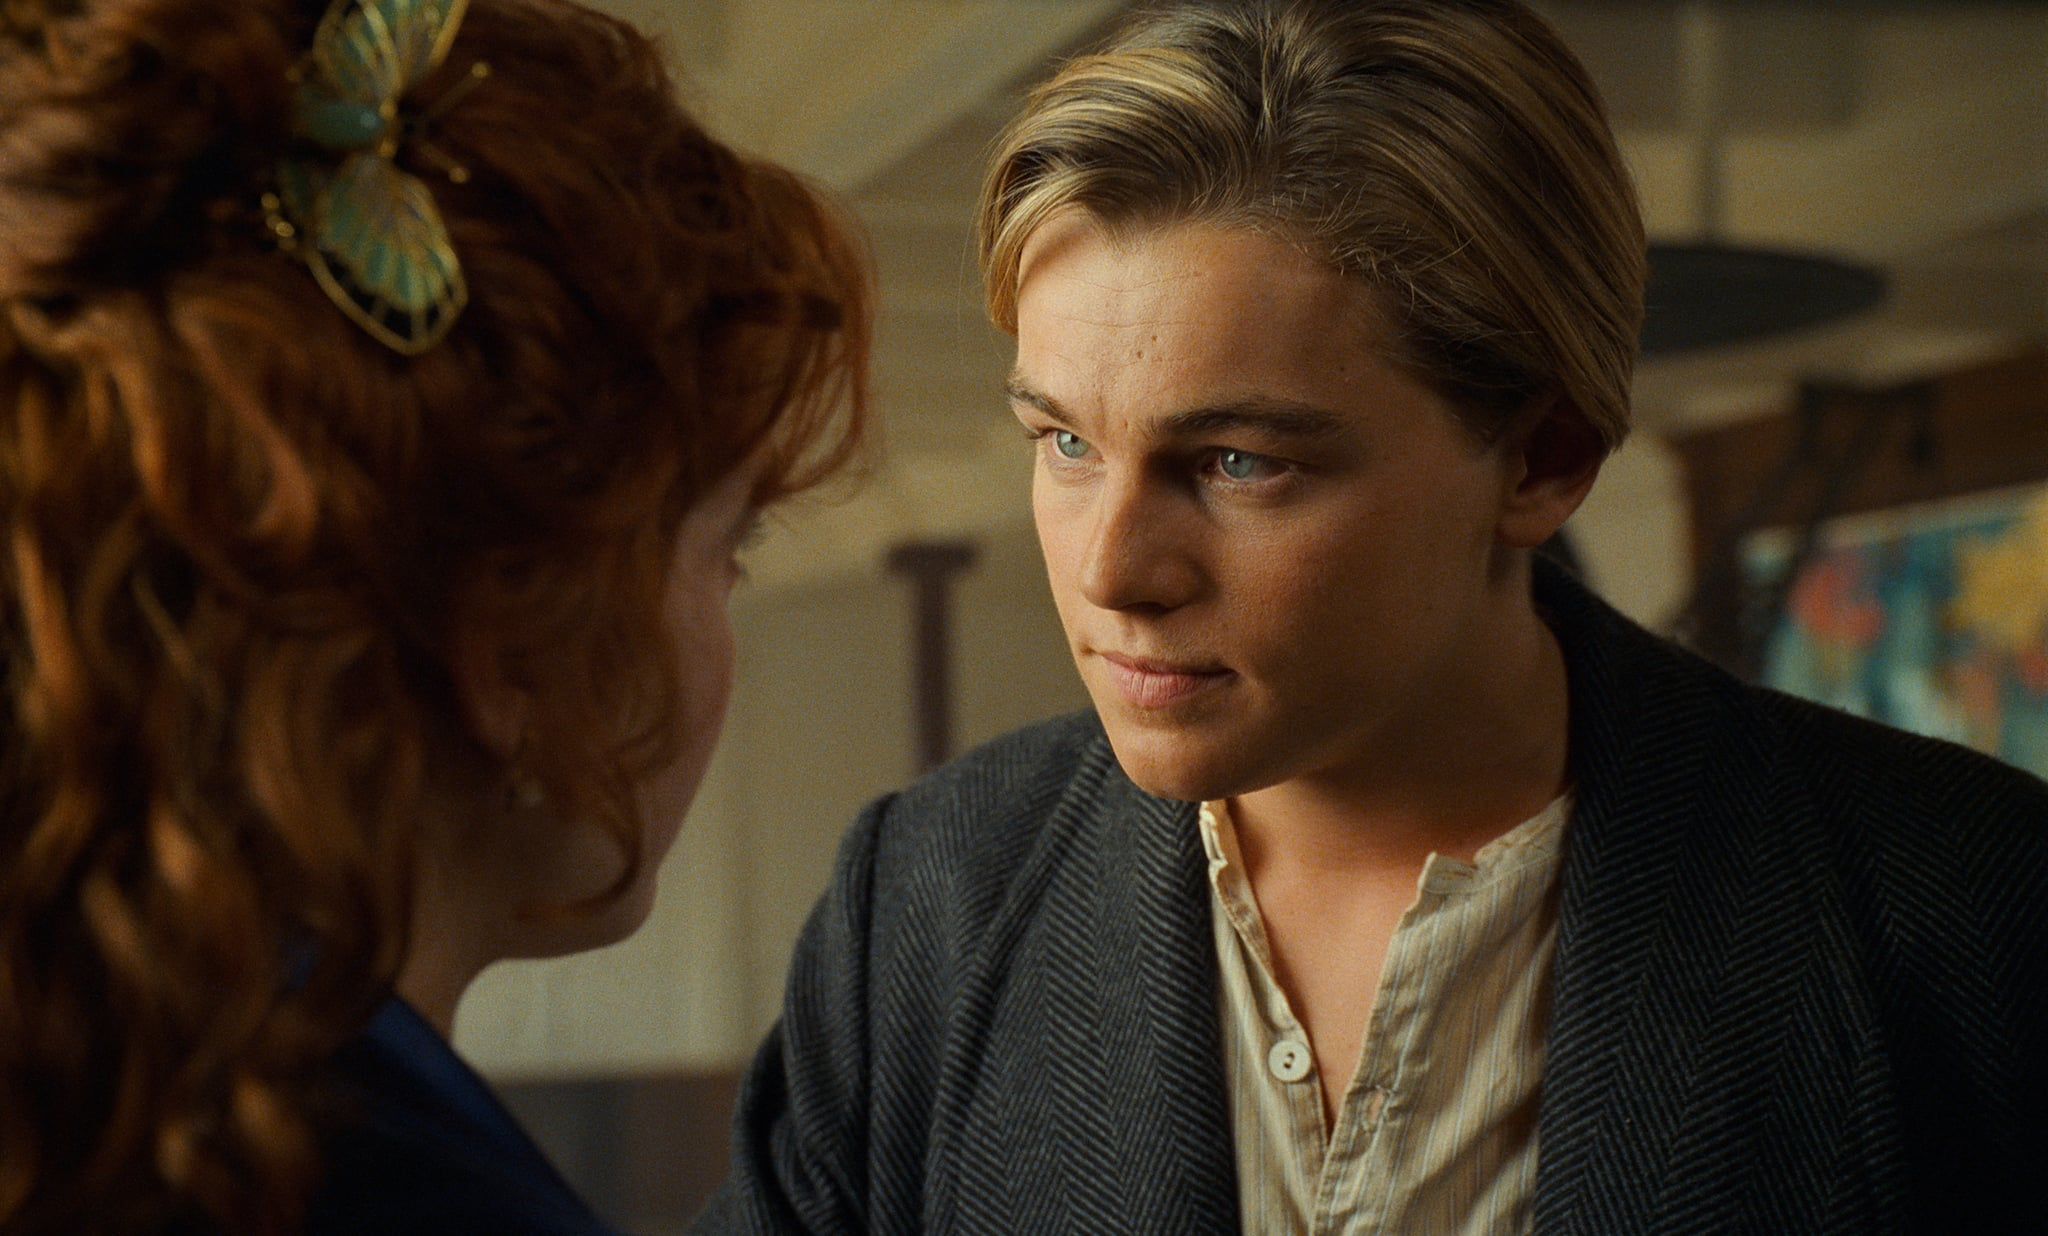 Kate Winslet and Leonardo DiCaprio in Titanic.